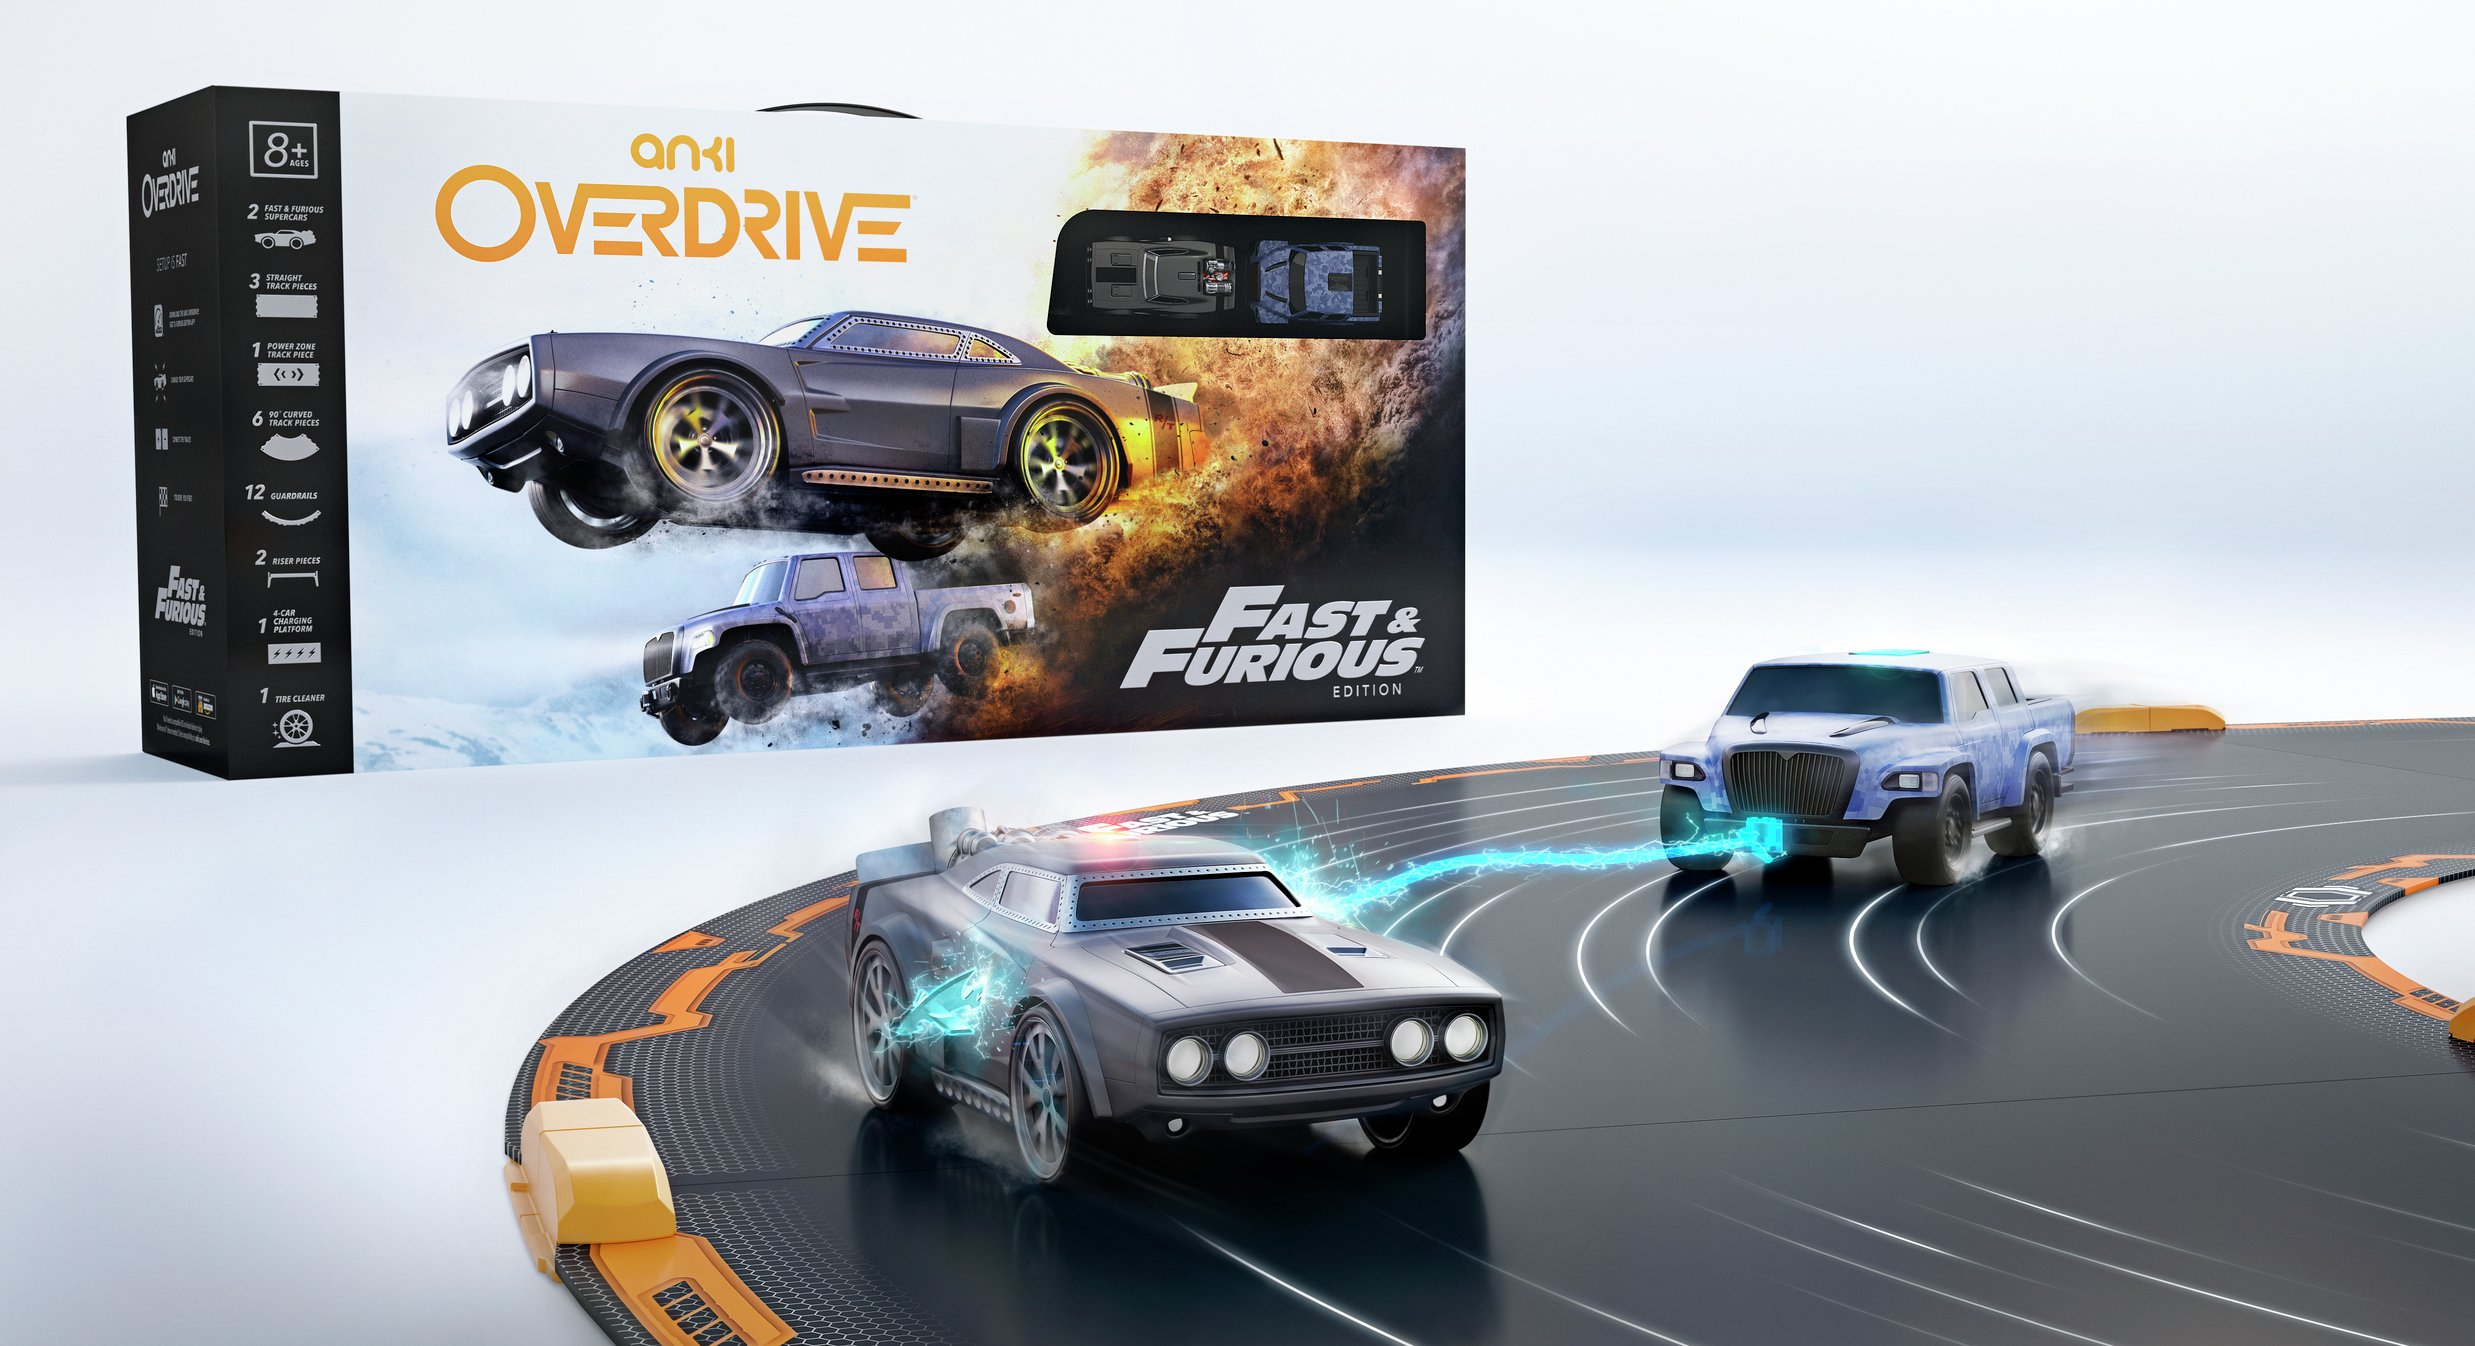 Overdrive Starter Kit Fast and Furious Edition